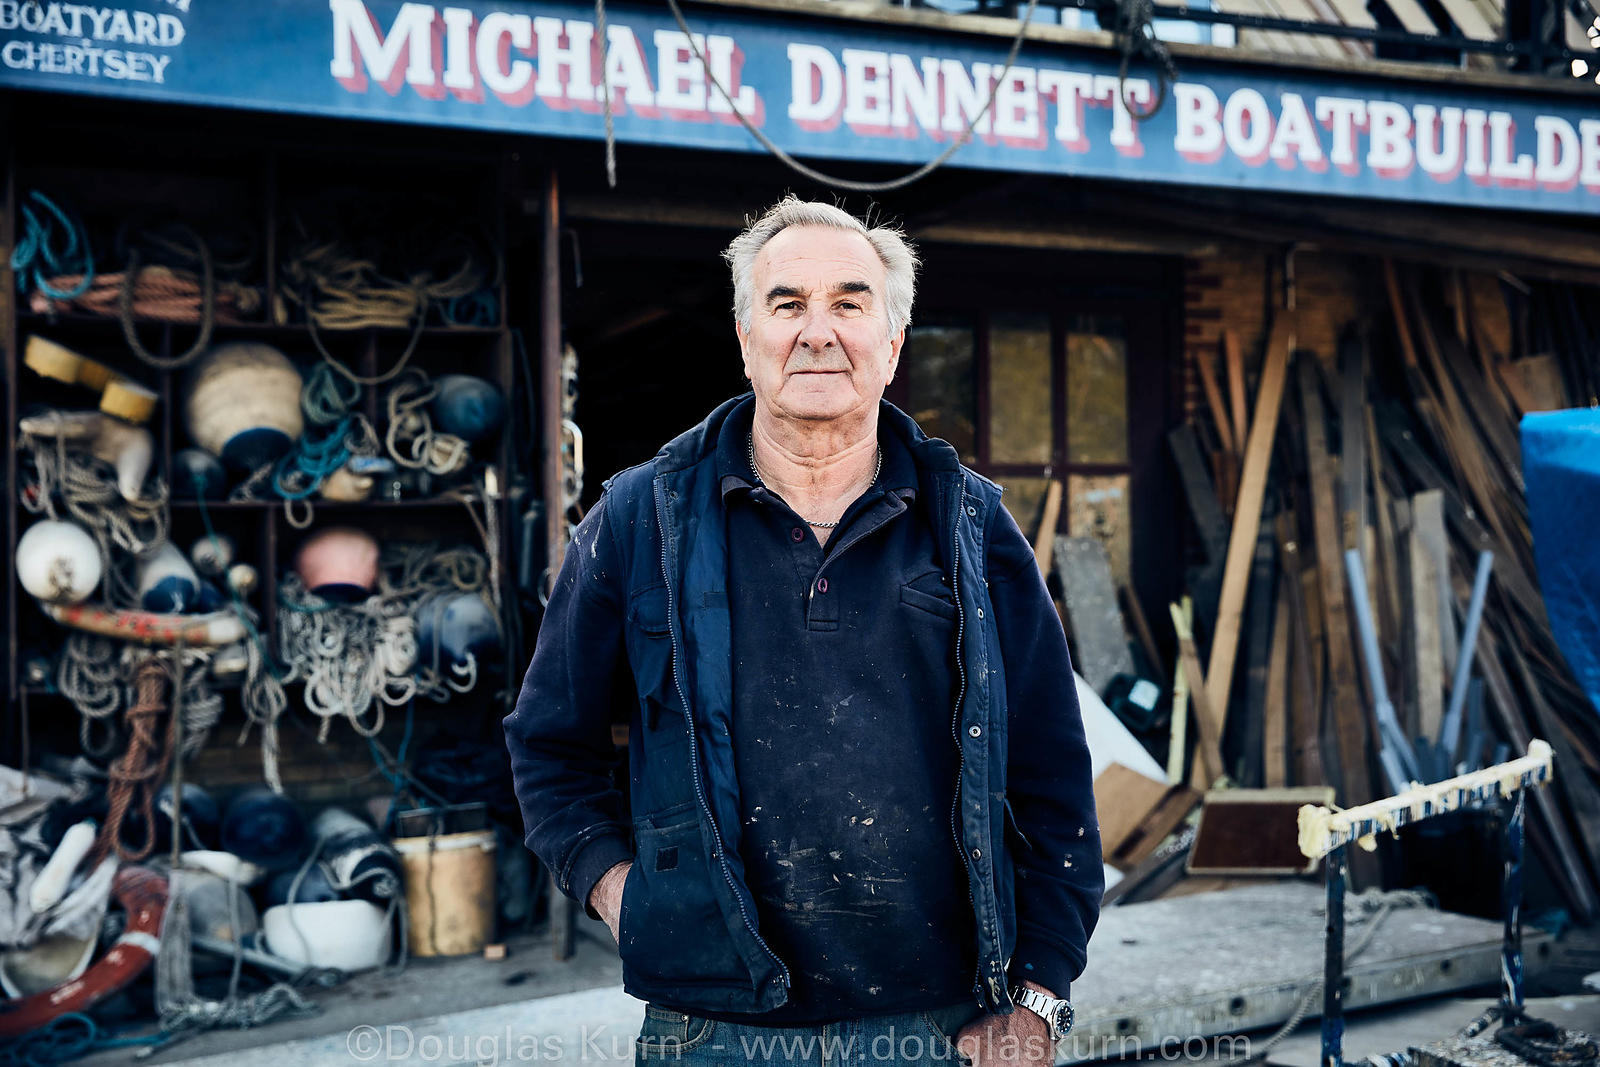 Michael Dennet outside the boathouse of Michael Dennet Boatbuilders